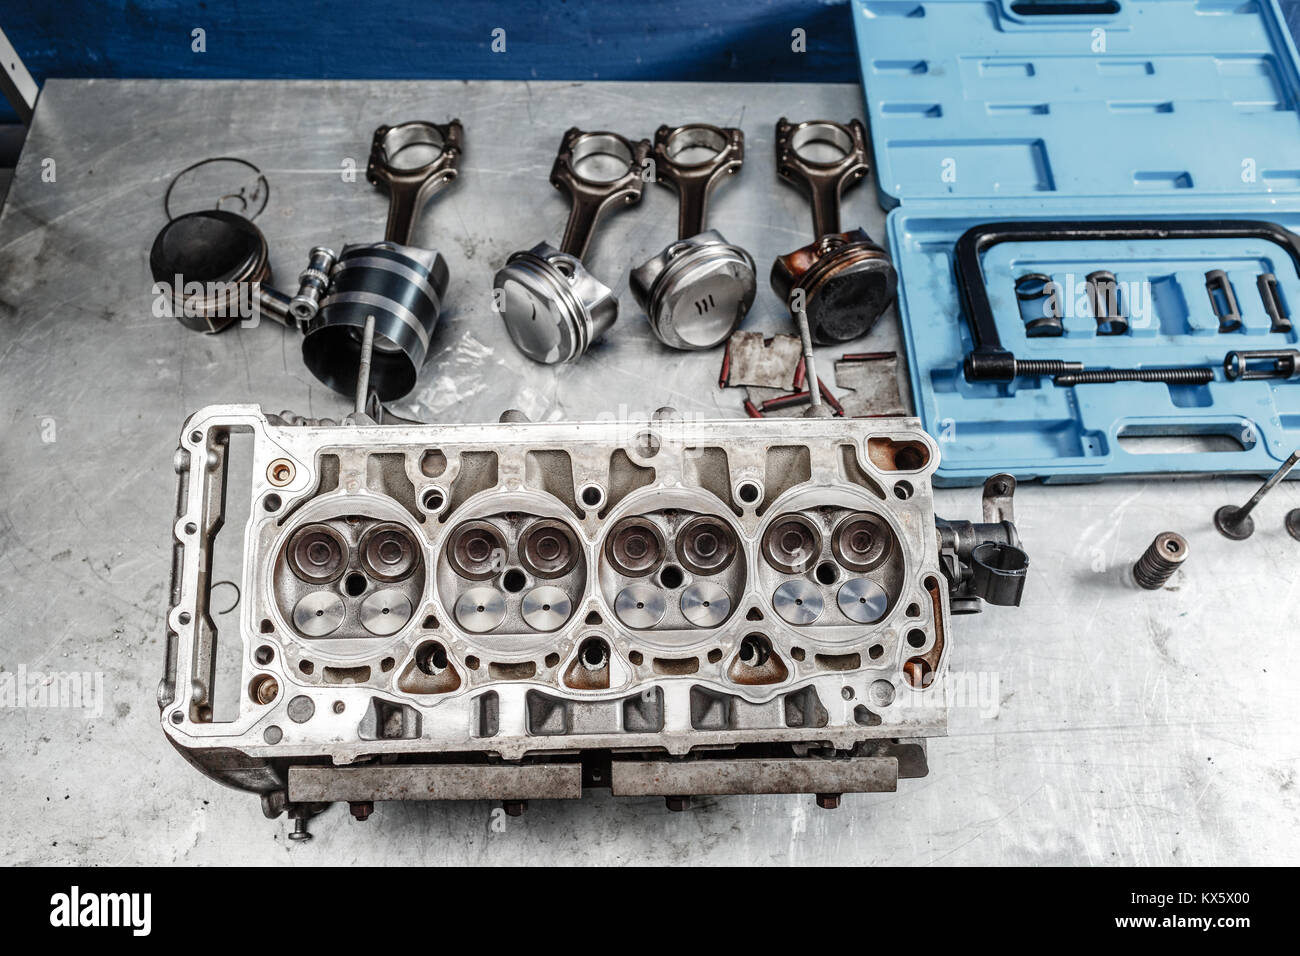 Pistons Crankshaft Stockfotos & Pistons Crankshaft Bilder - Alamy